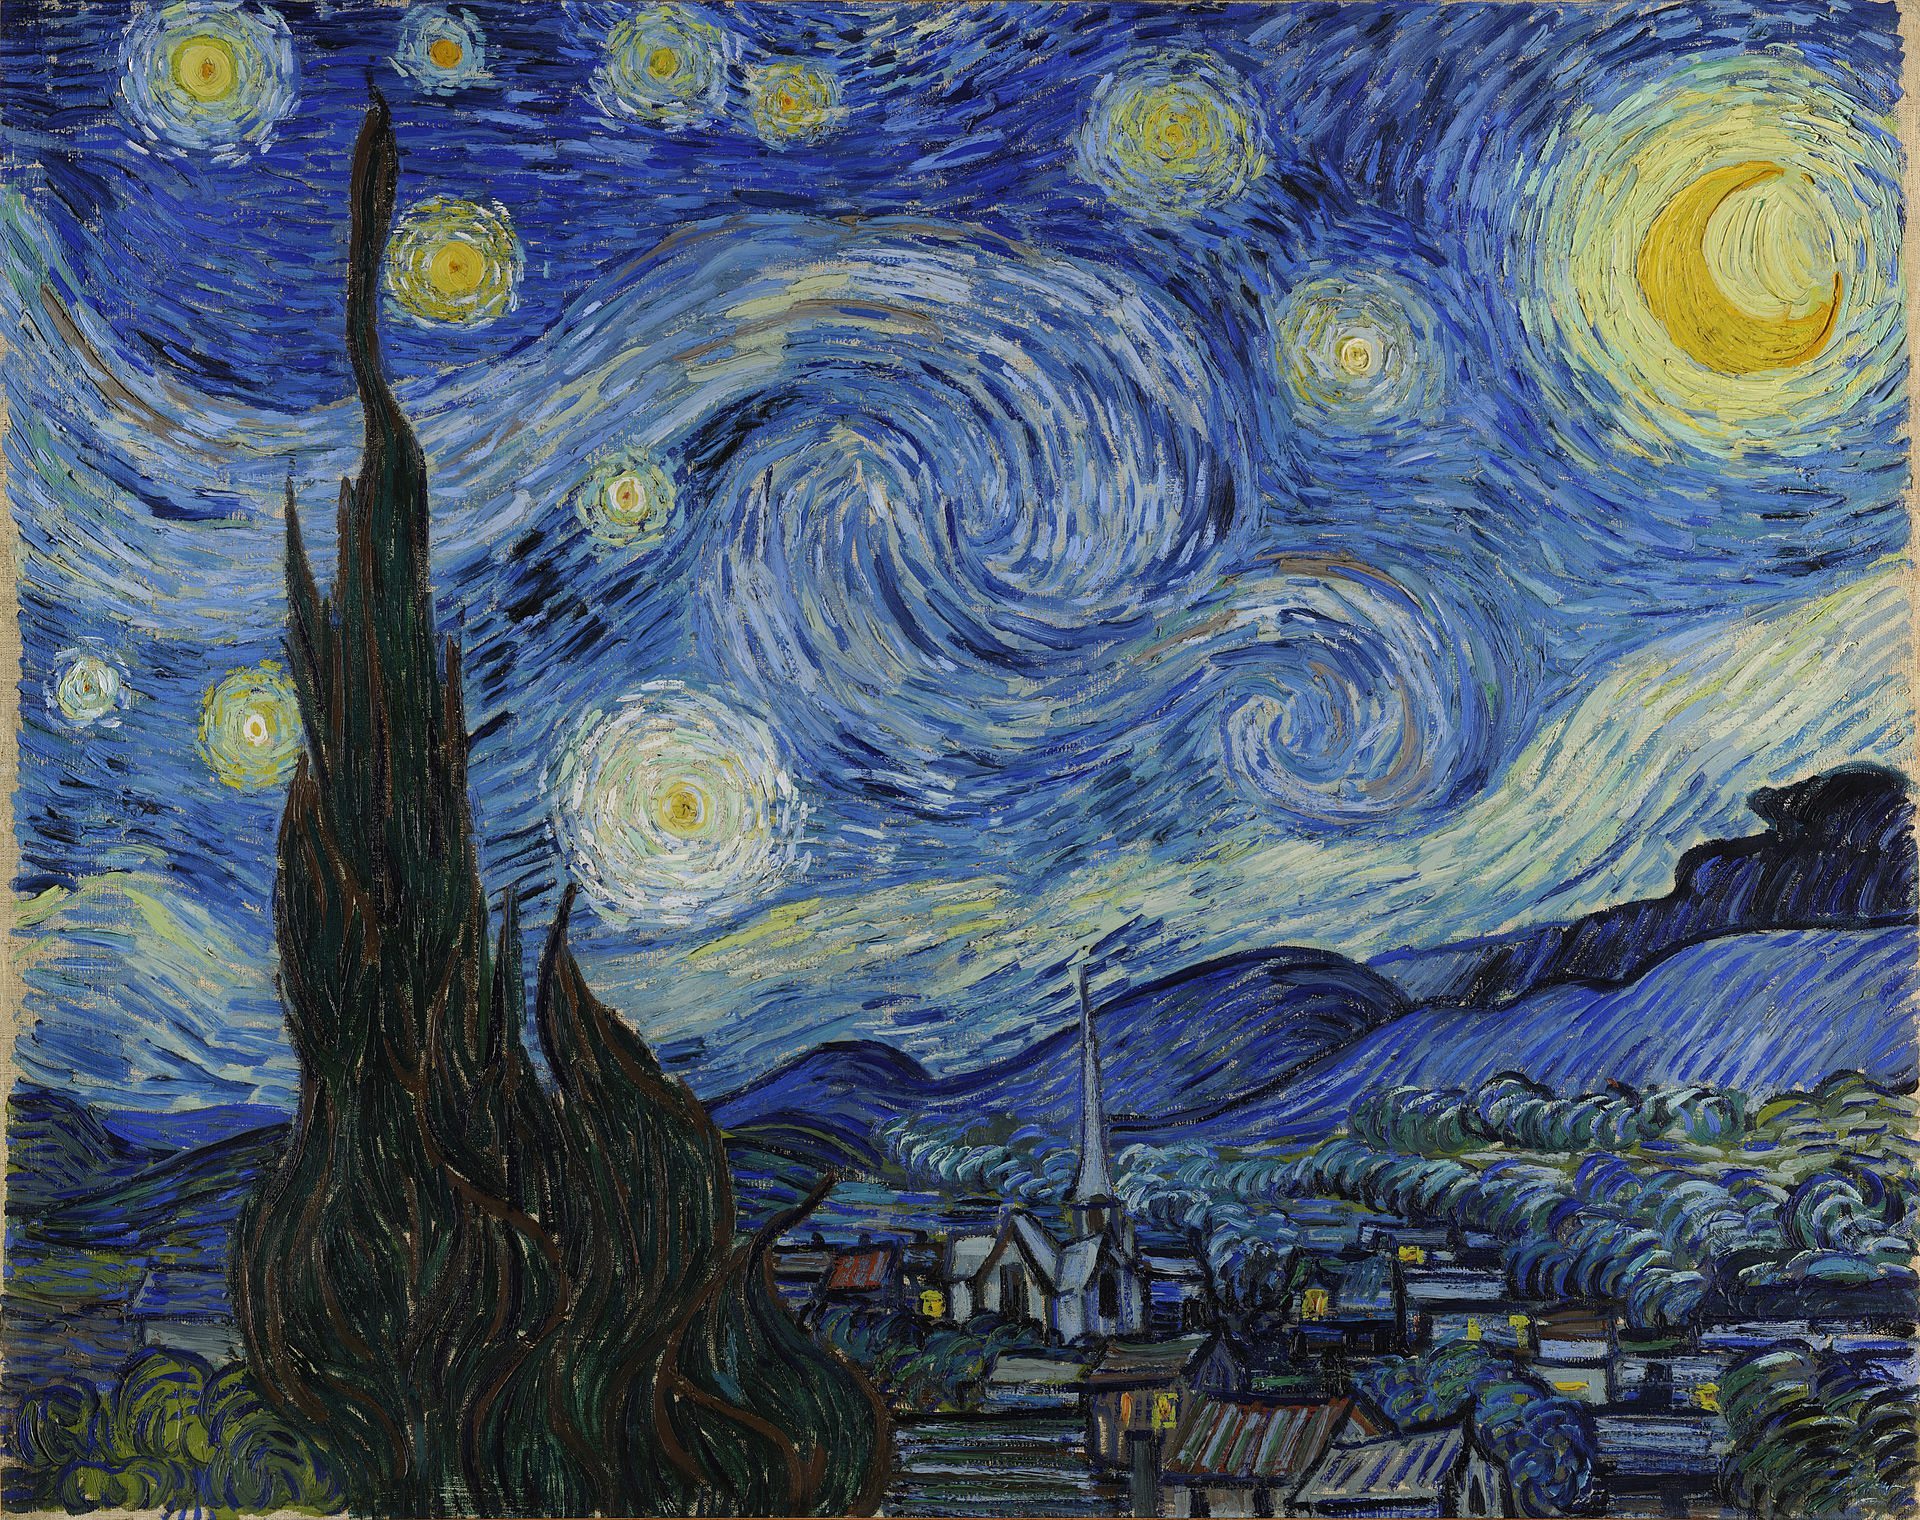 Vincent van Gogh,  The Starry Night , 1889, The Museum of Modern Art, New York.